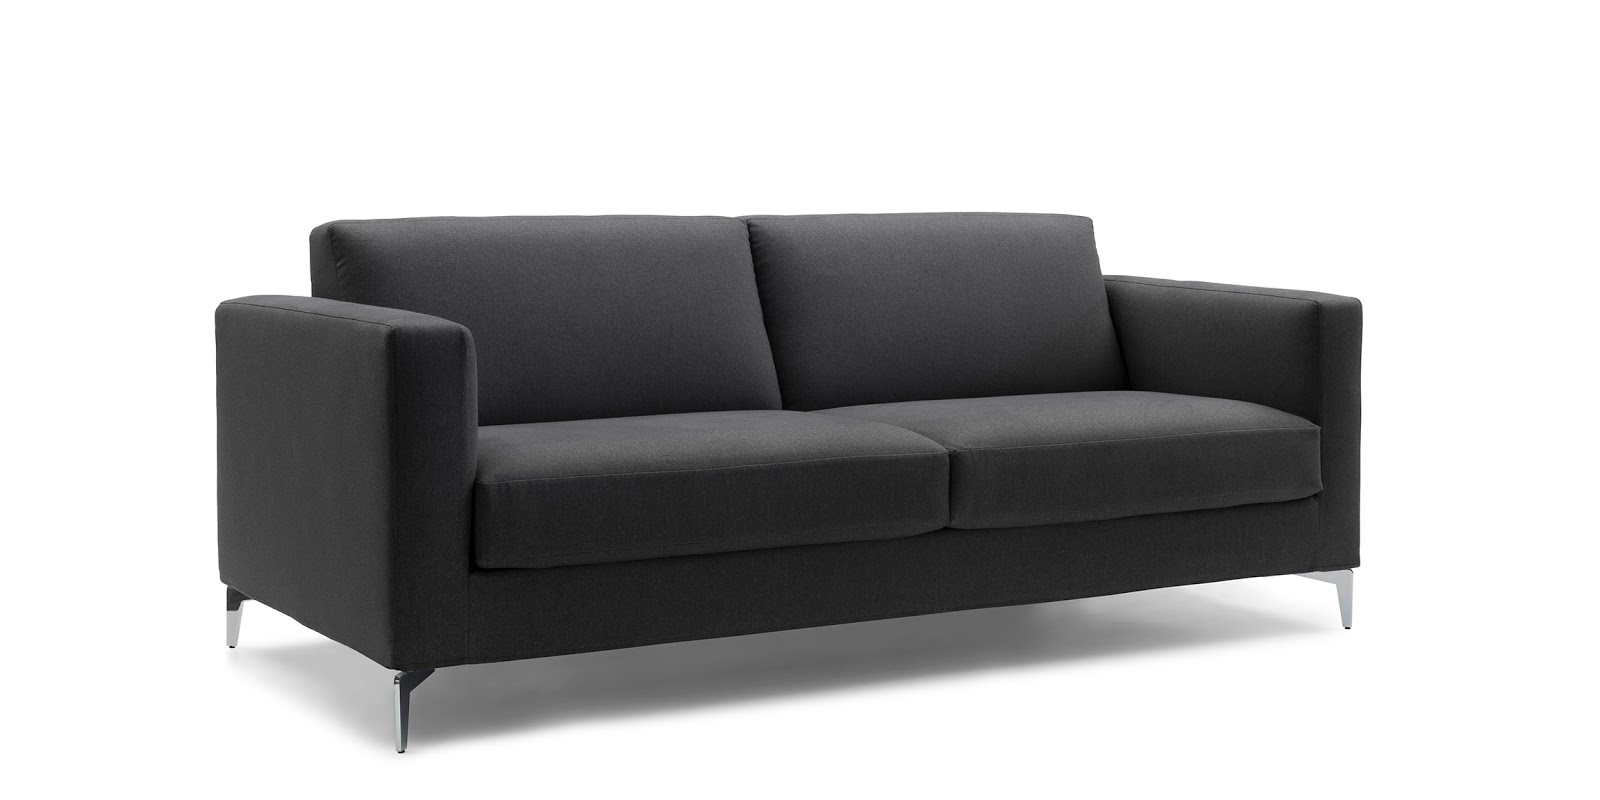 momentoitalia italian furniture blog news from the 2016 milan design week new modern sofa beds. Black Bedroom Furniture Sets. Home Design Ideas